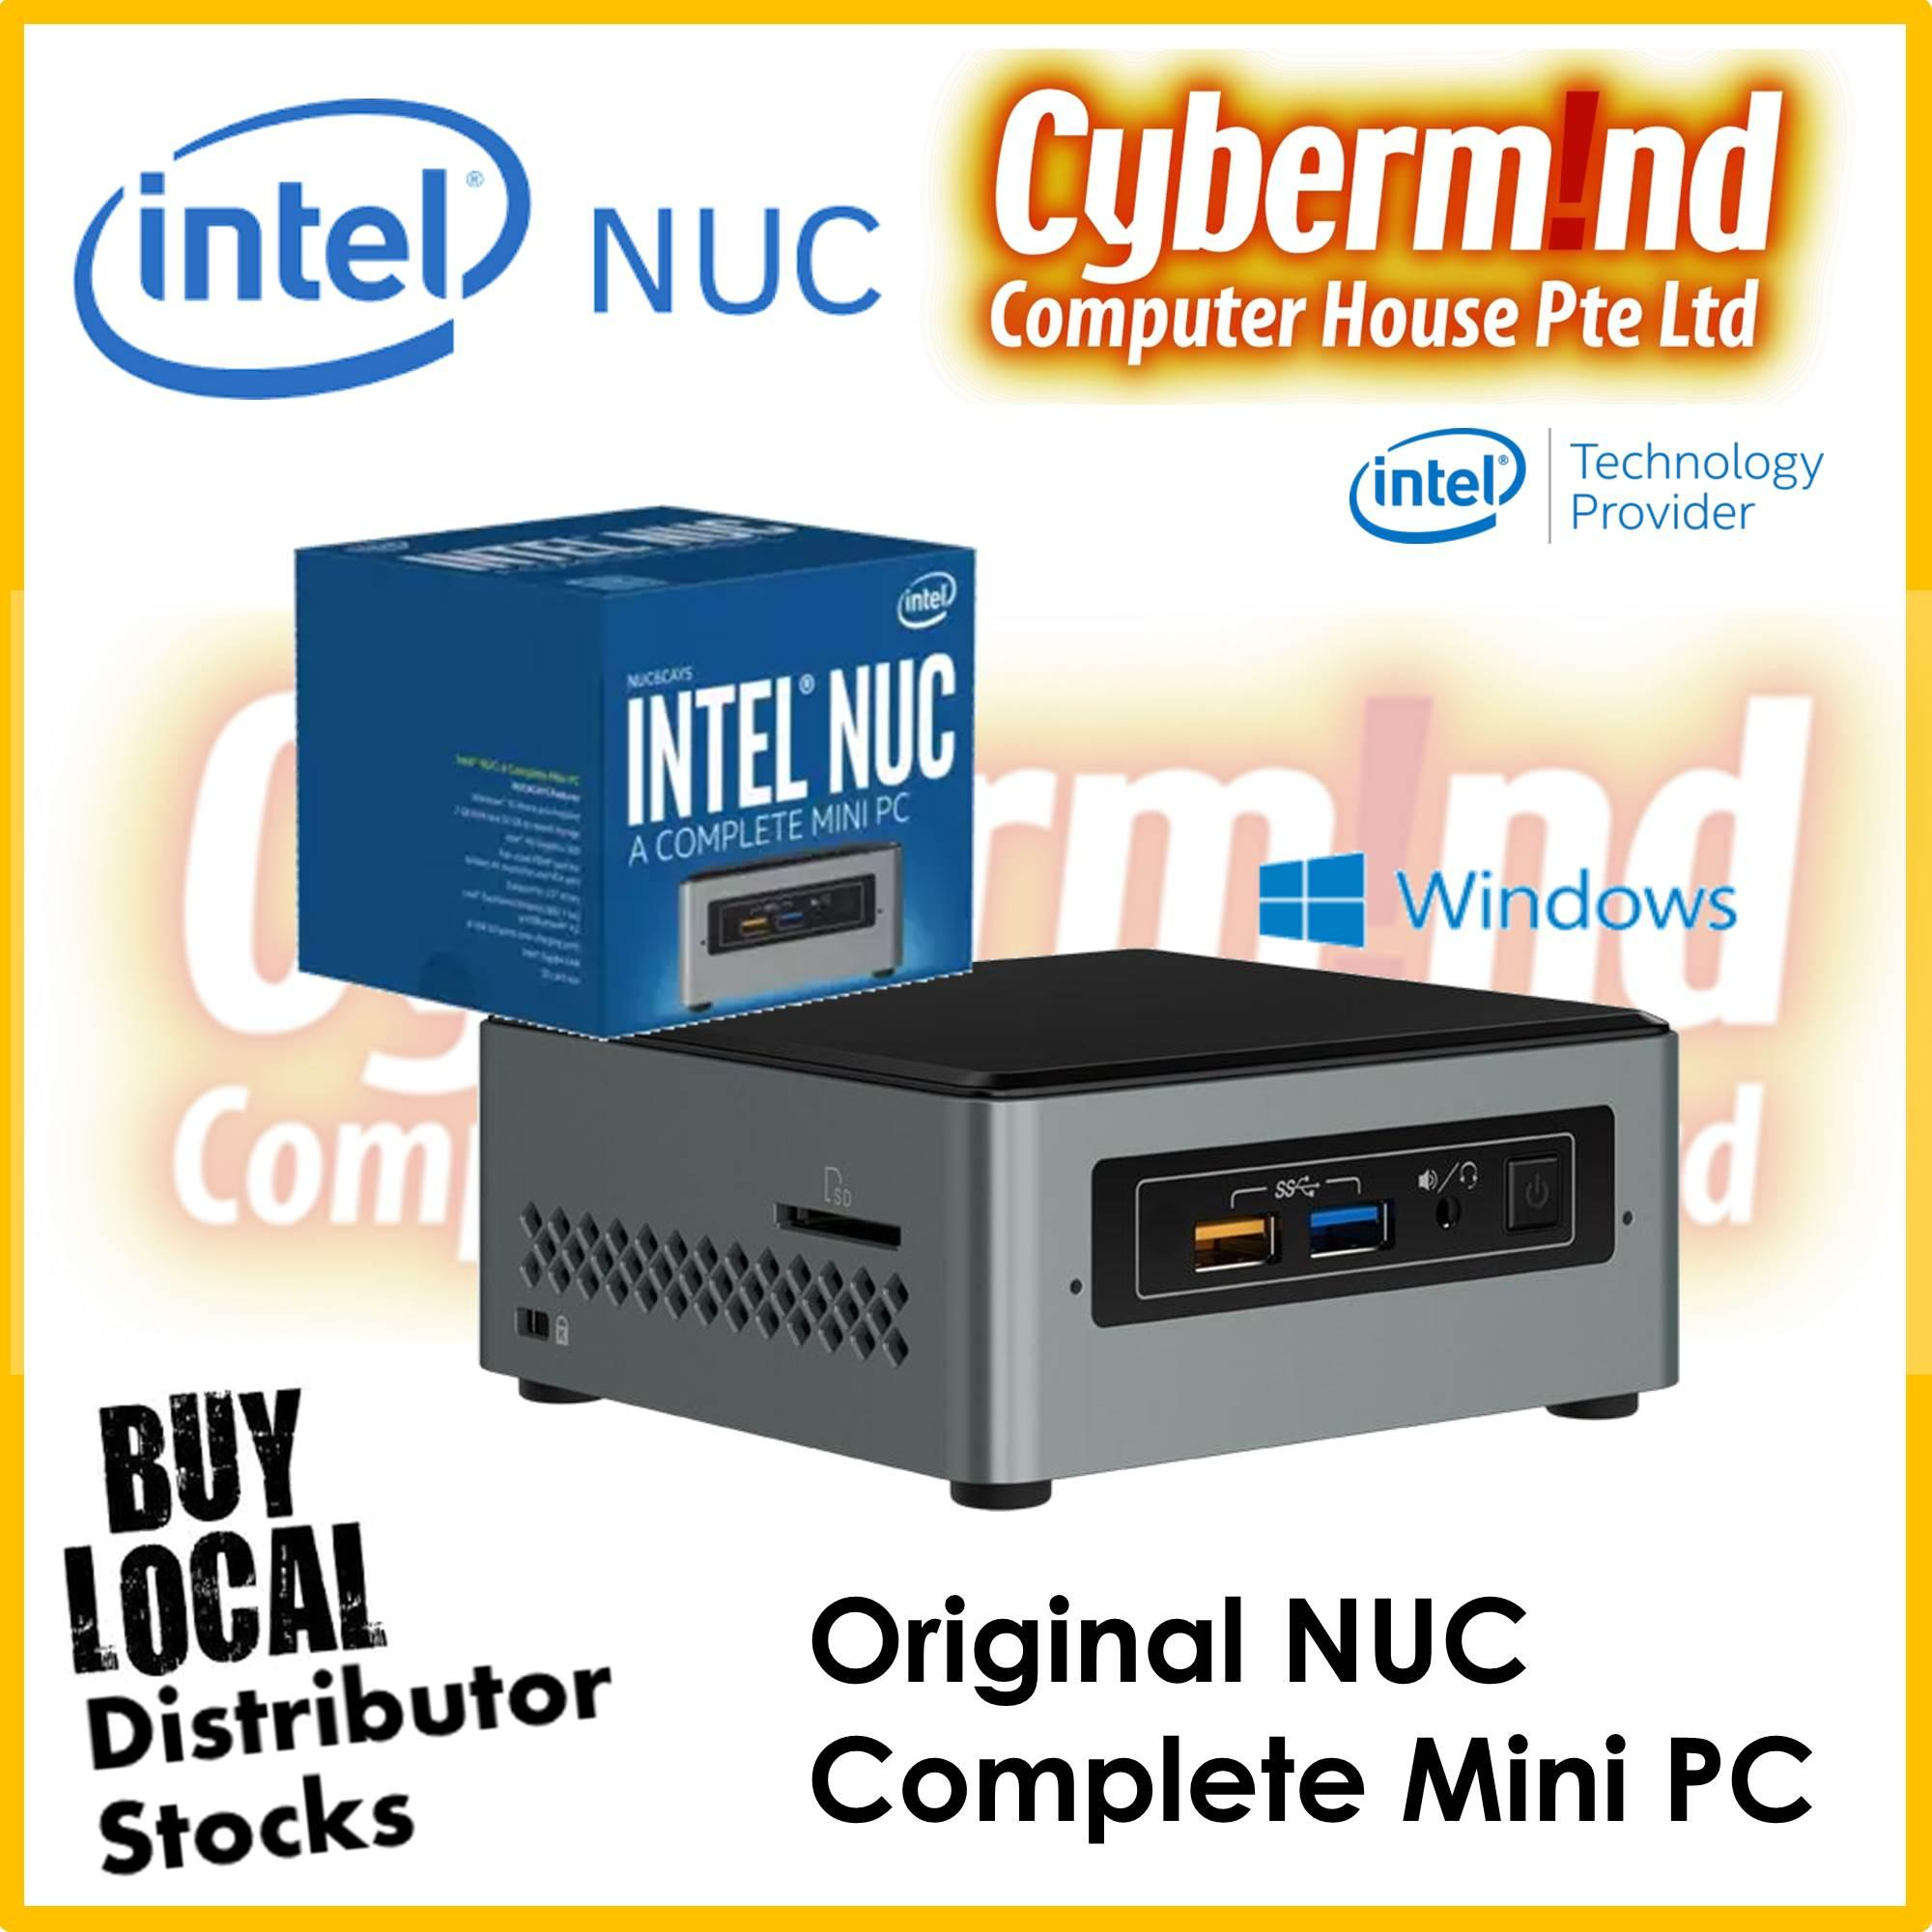 (Intel® Technology Provider) Intel NUC6CAYS NUC Complete Mini PC (Local Singapore Distributor Stocks)